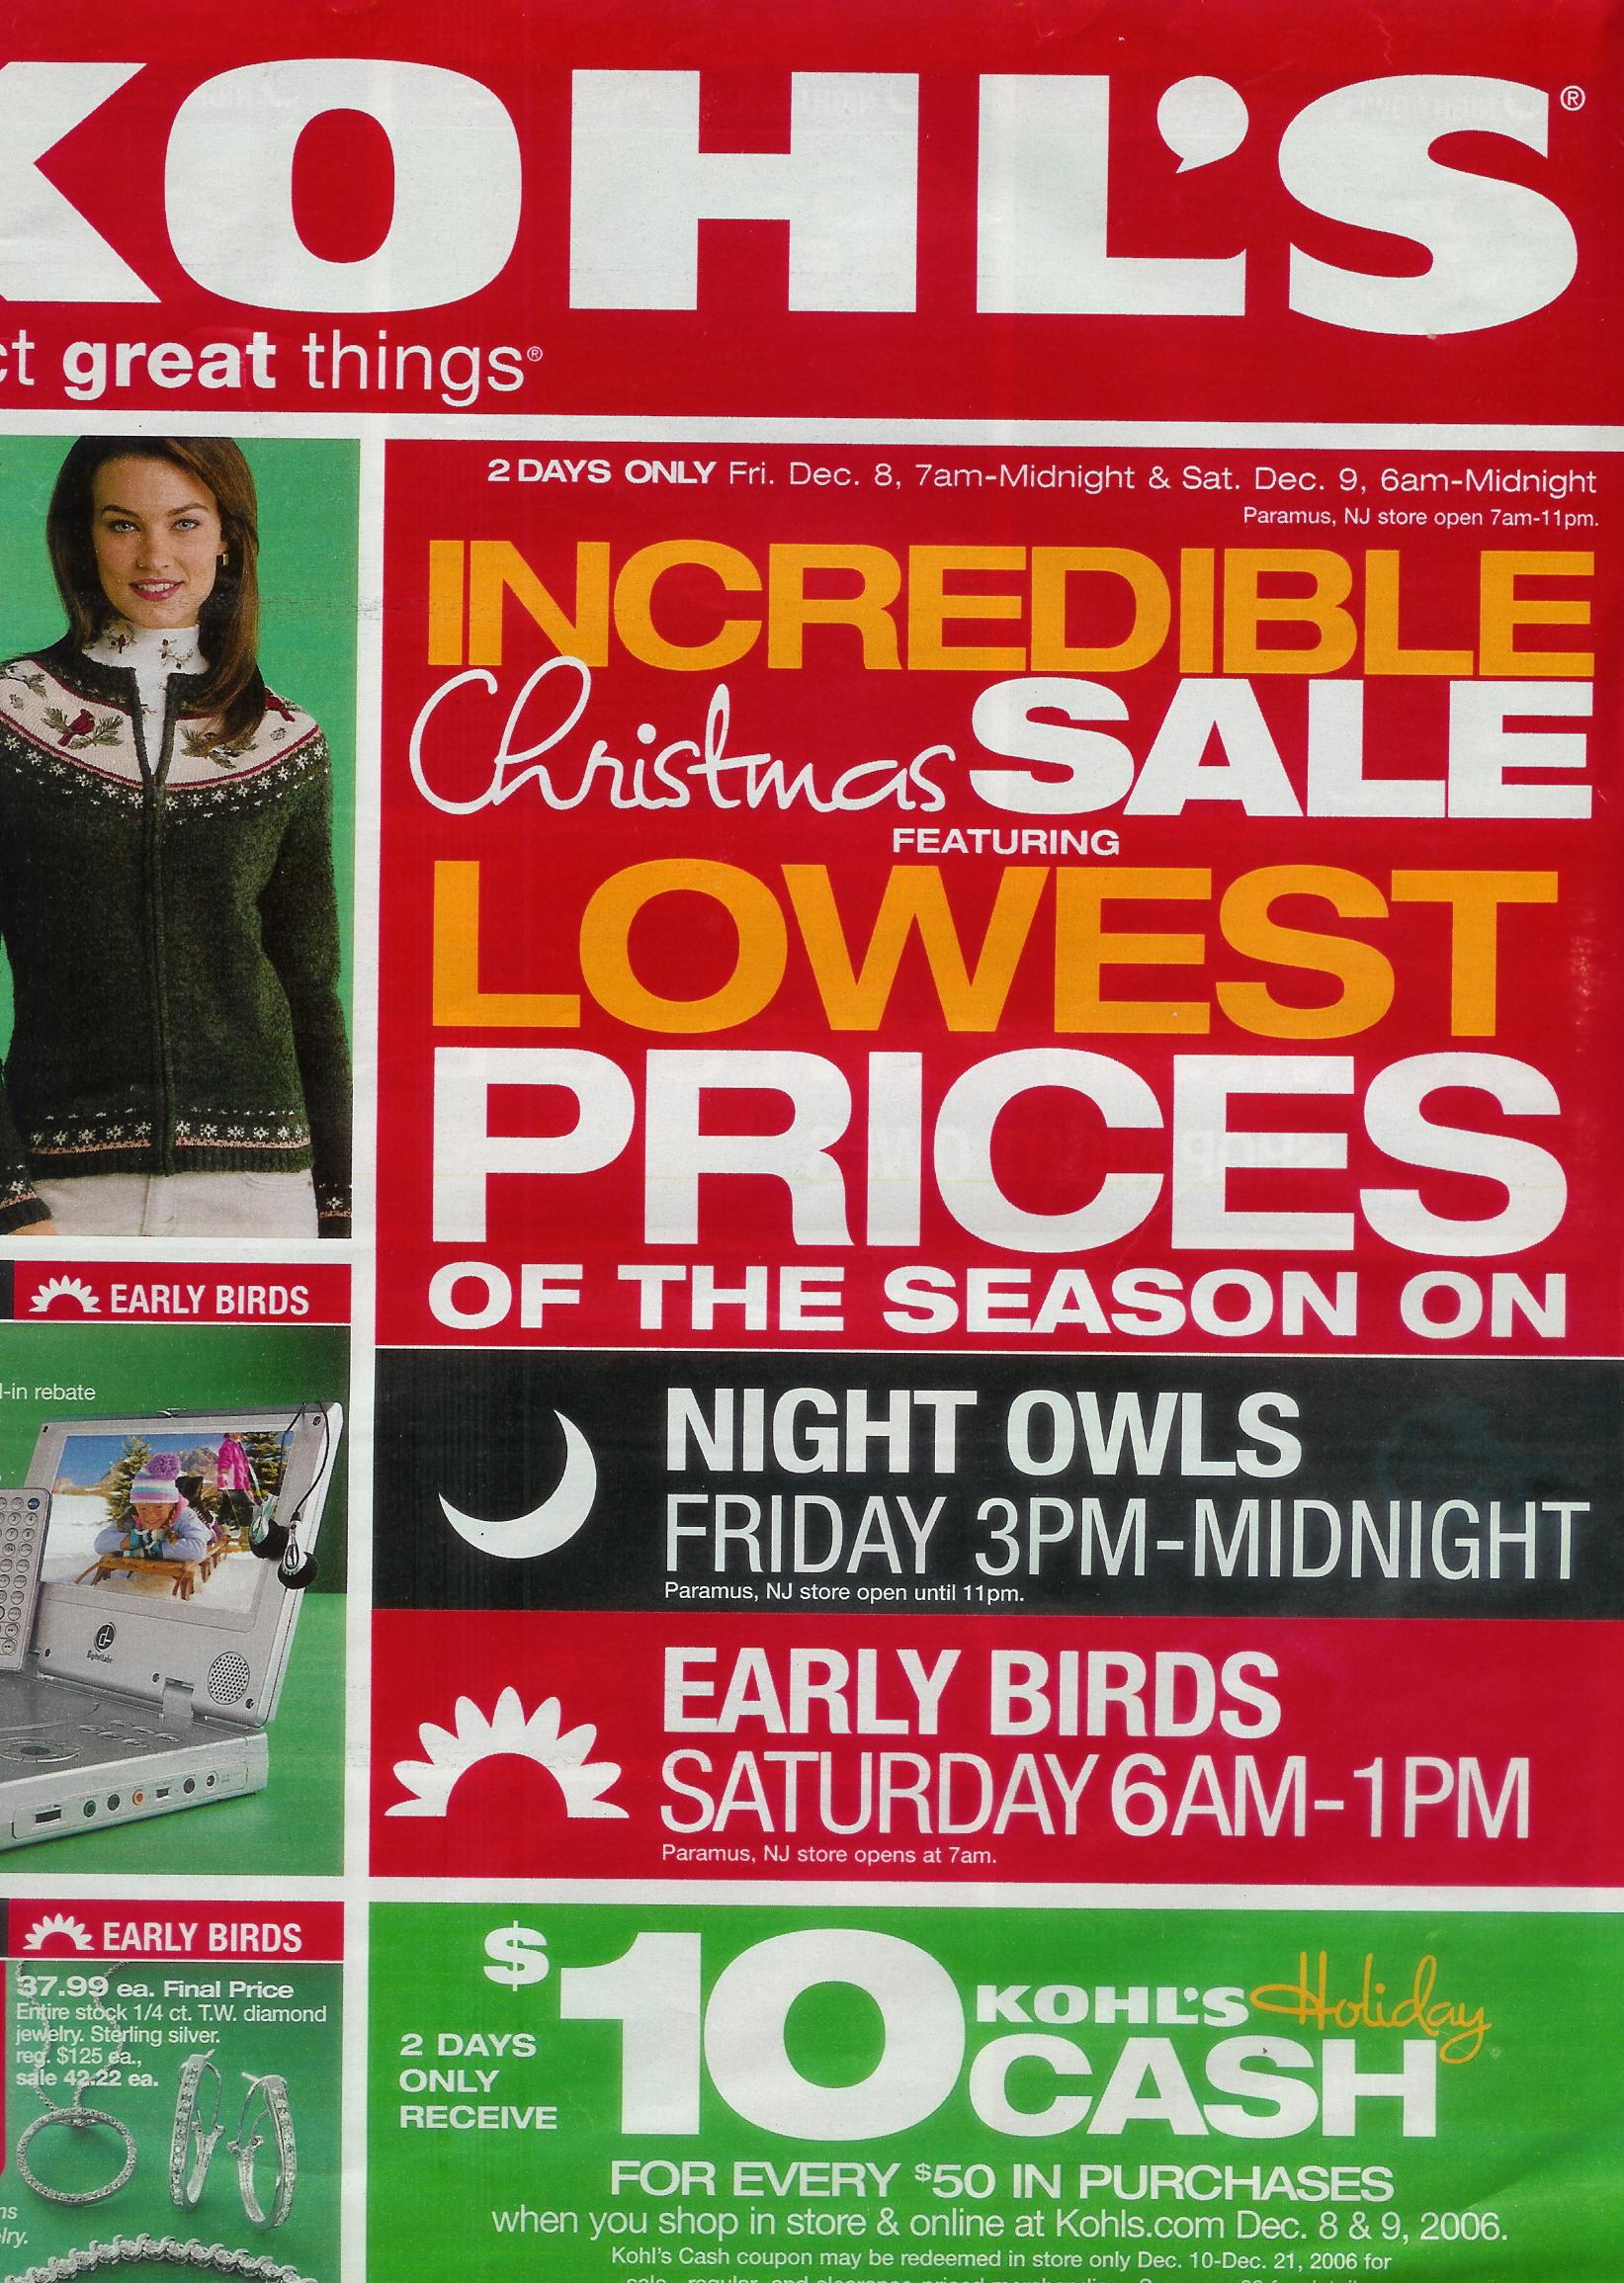 kohls-incredible-christmas-sale